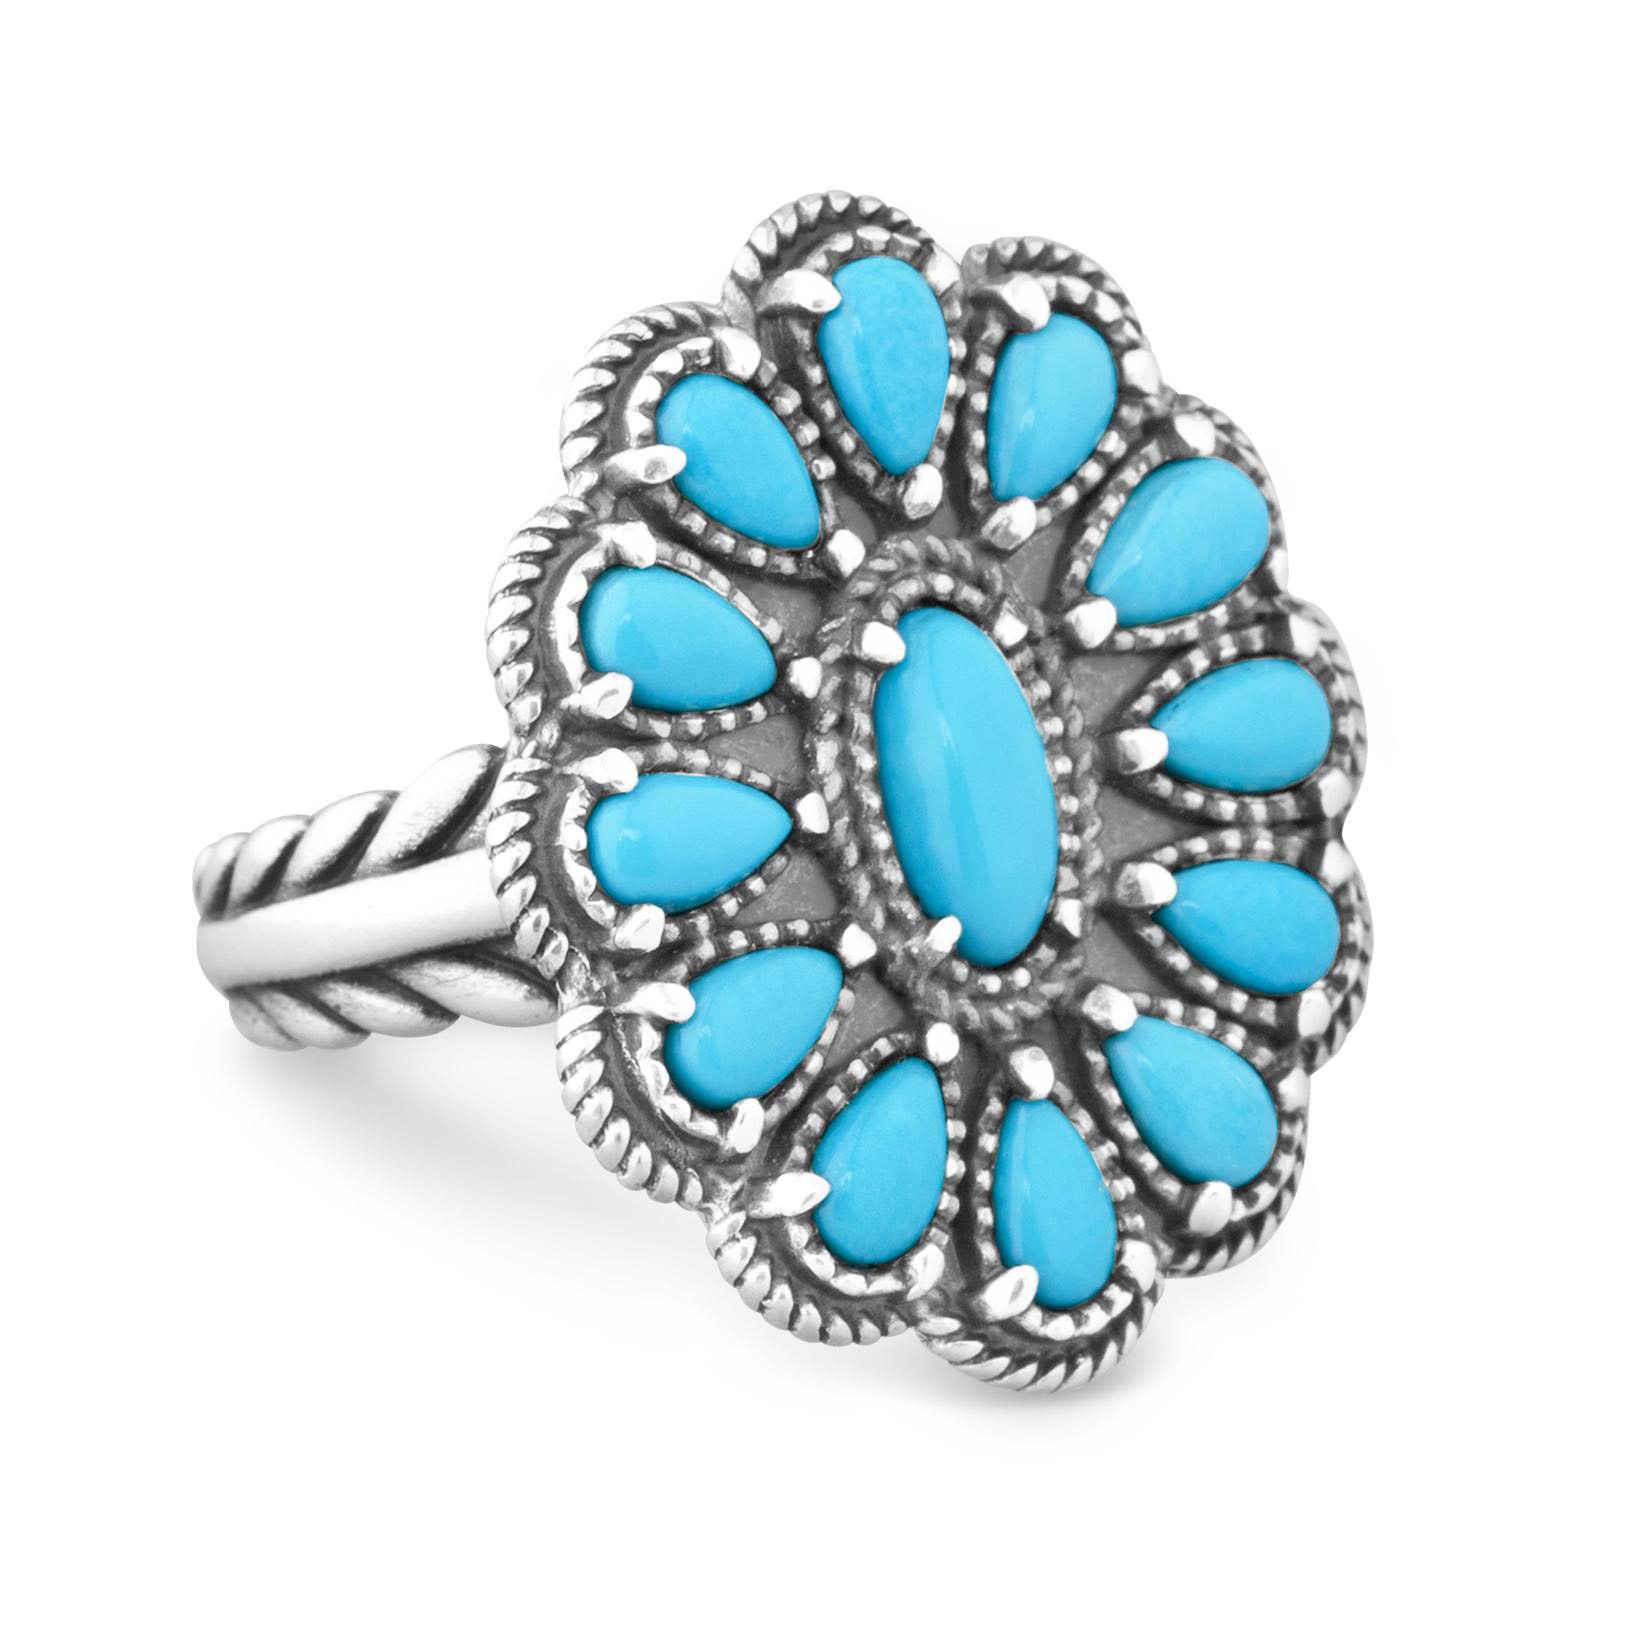 a1bb76e13bb3b9 American West Jewelry Debuts Stunning New Jewelry Line with Turquoise from  Arizona's Famed Sleeping Beauty Mine | Business Wire